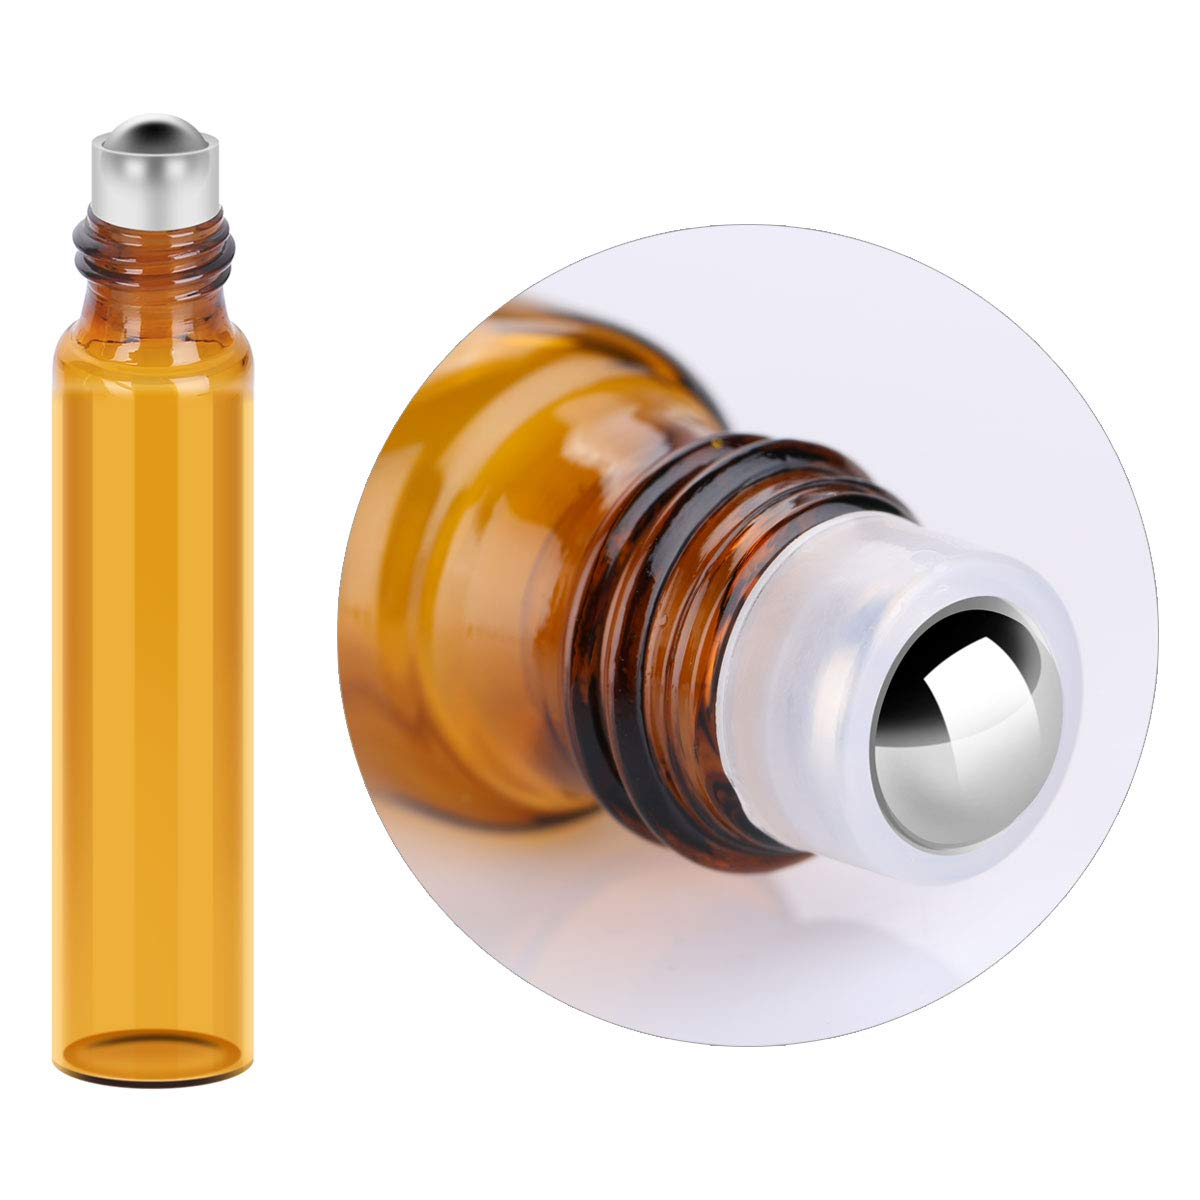 24 Pack 3 Size Amber Glass Essential Oil Roller Bottles with Stainless Steel Balls to Roll on for Perfume Skin Emulsion Droppers Funnels Labels and Opener as Gifts by Tbestmax (Image #2)